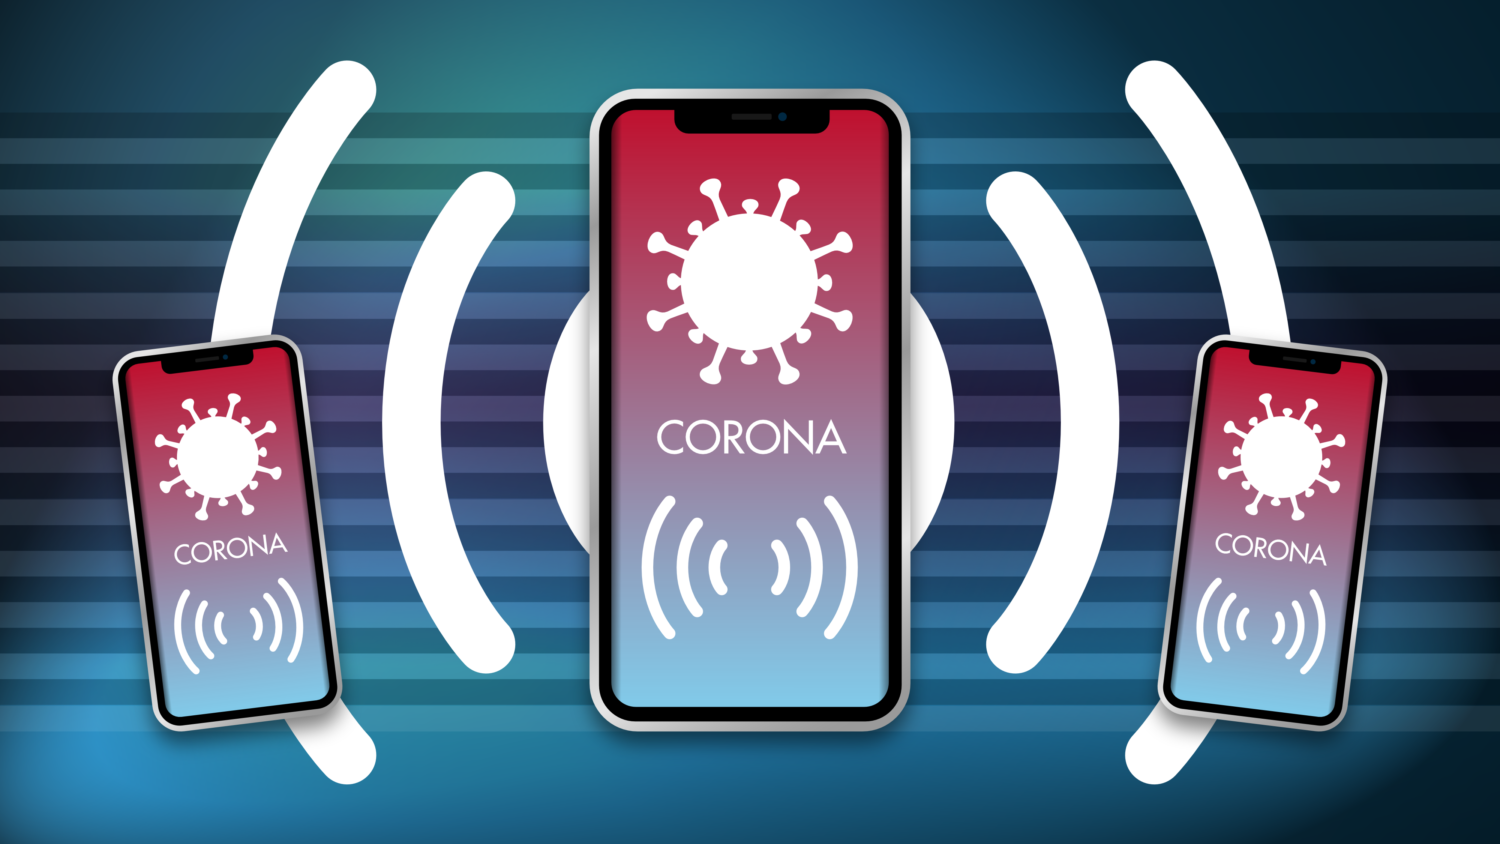 Gratis Download von iXimus.de: Smartphone, iPhone, Corona-App, Corona-Warn-App, iOS, Adroid, Deutschland, Covid-19, Corona, Application, transparenter Hintergrund, #000246